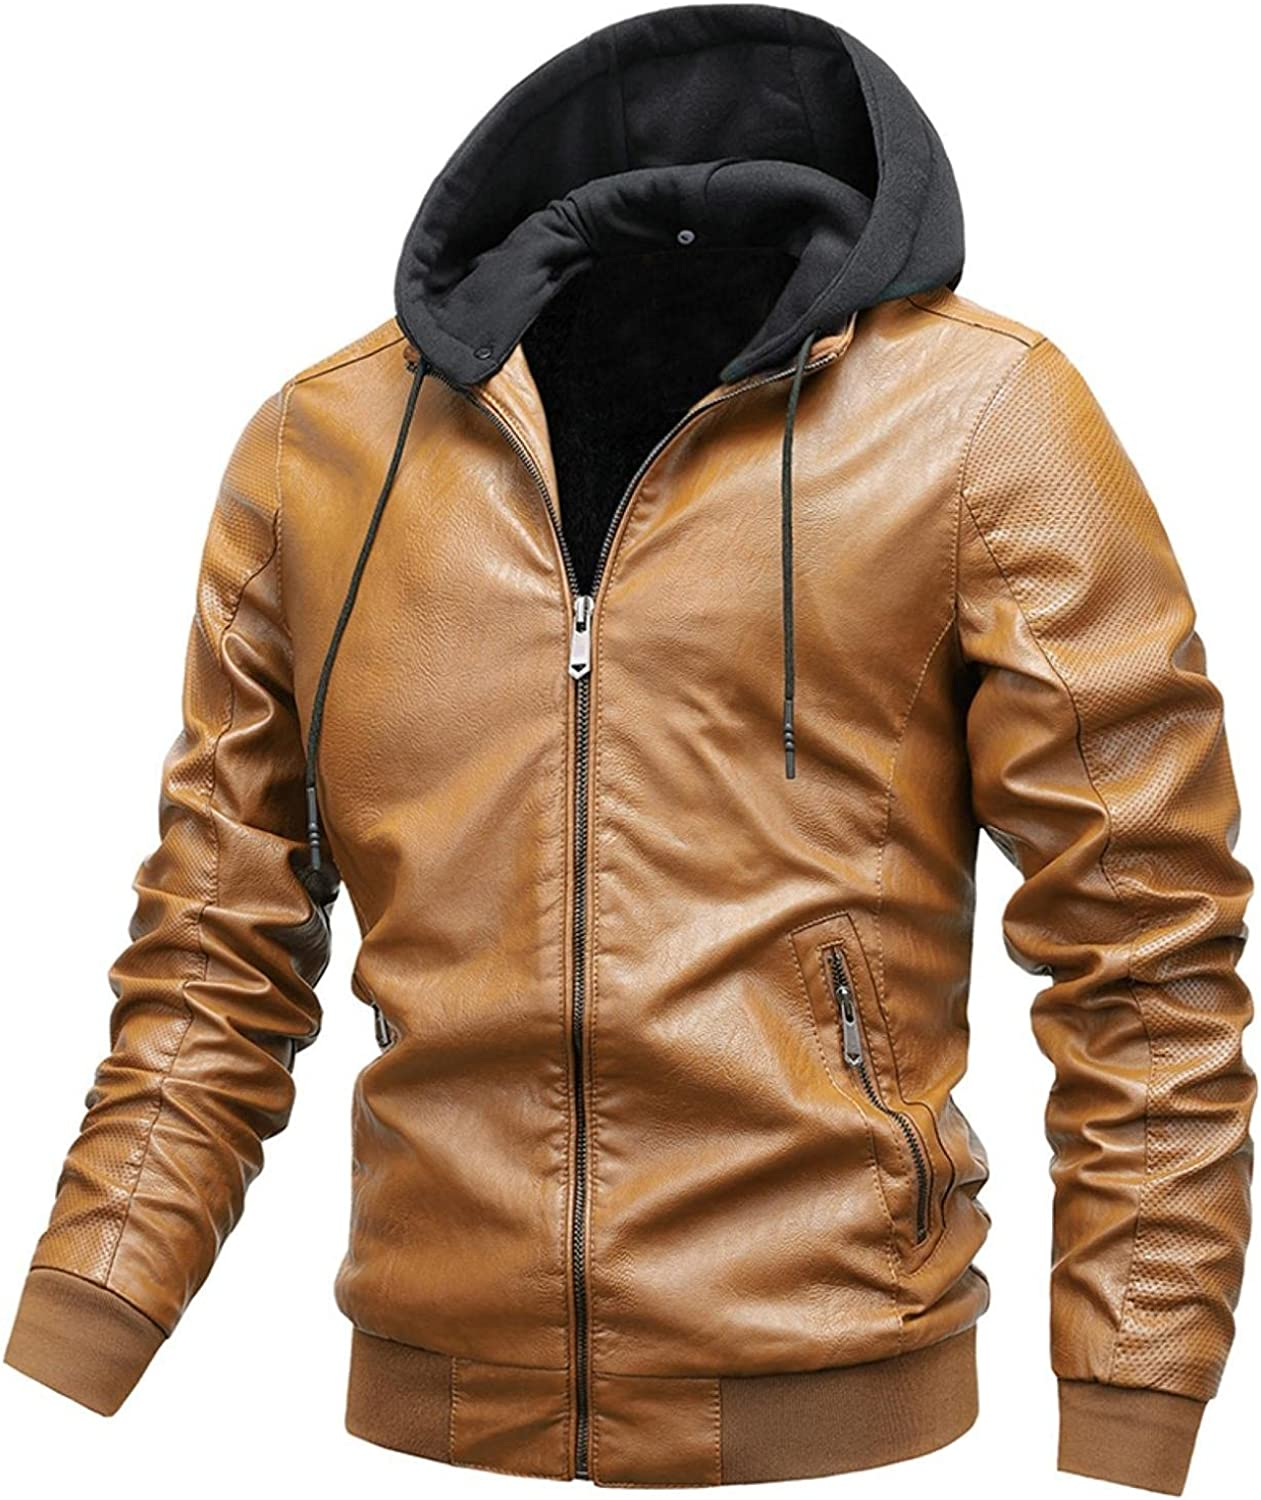 Men's Casual PU Faux Leather Jacket Stand Collar Fleece Zip-Up Motorcycle Bomber Jacket with Removable Hood